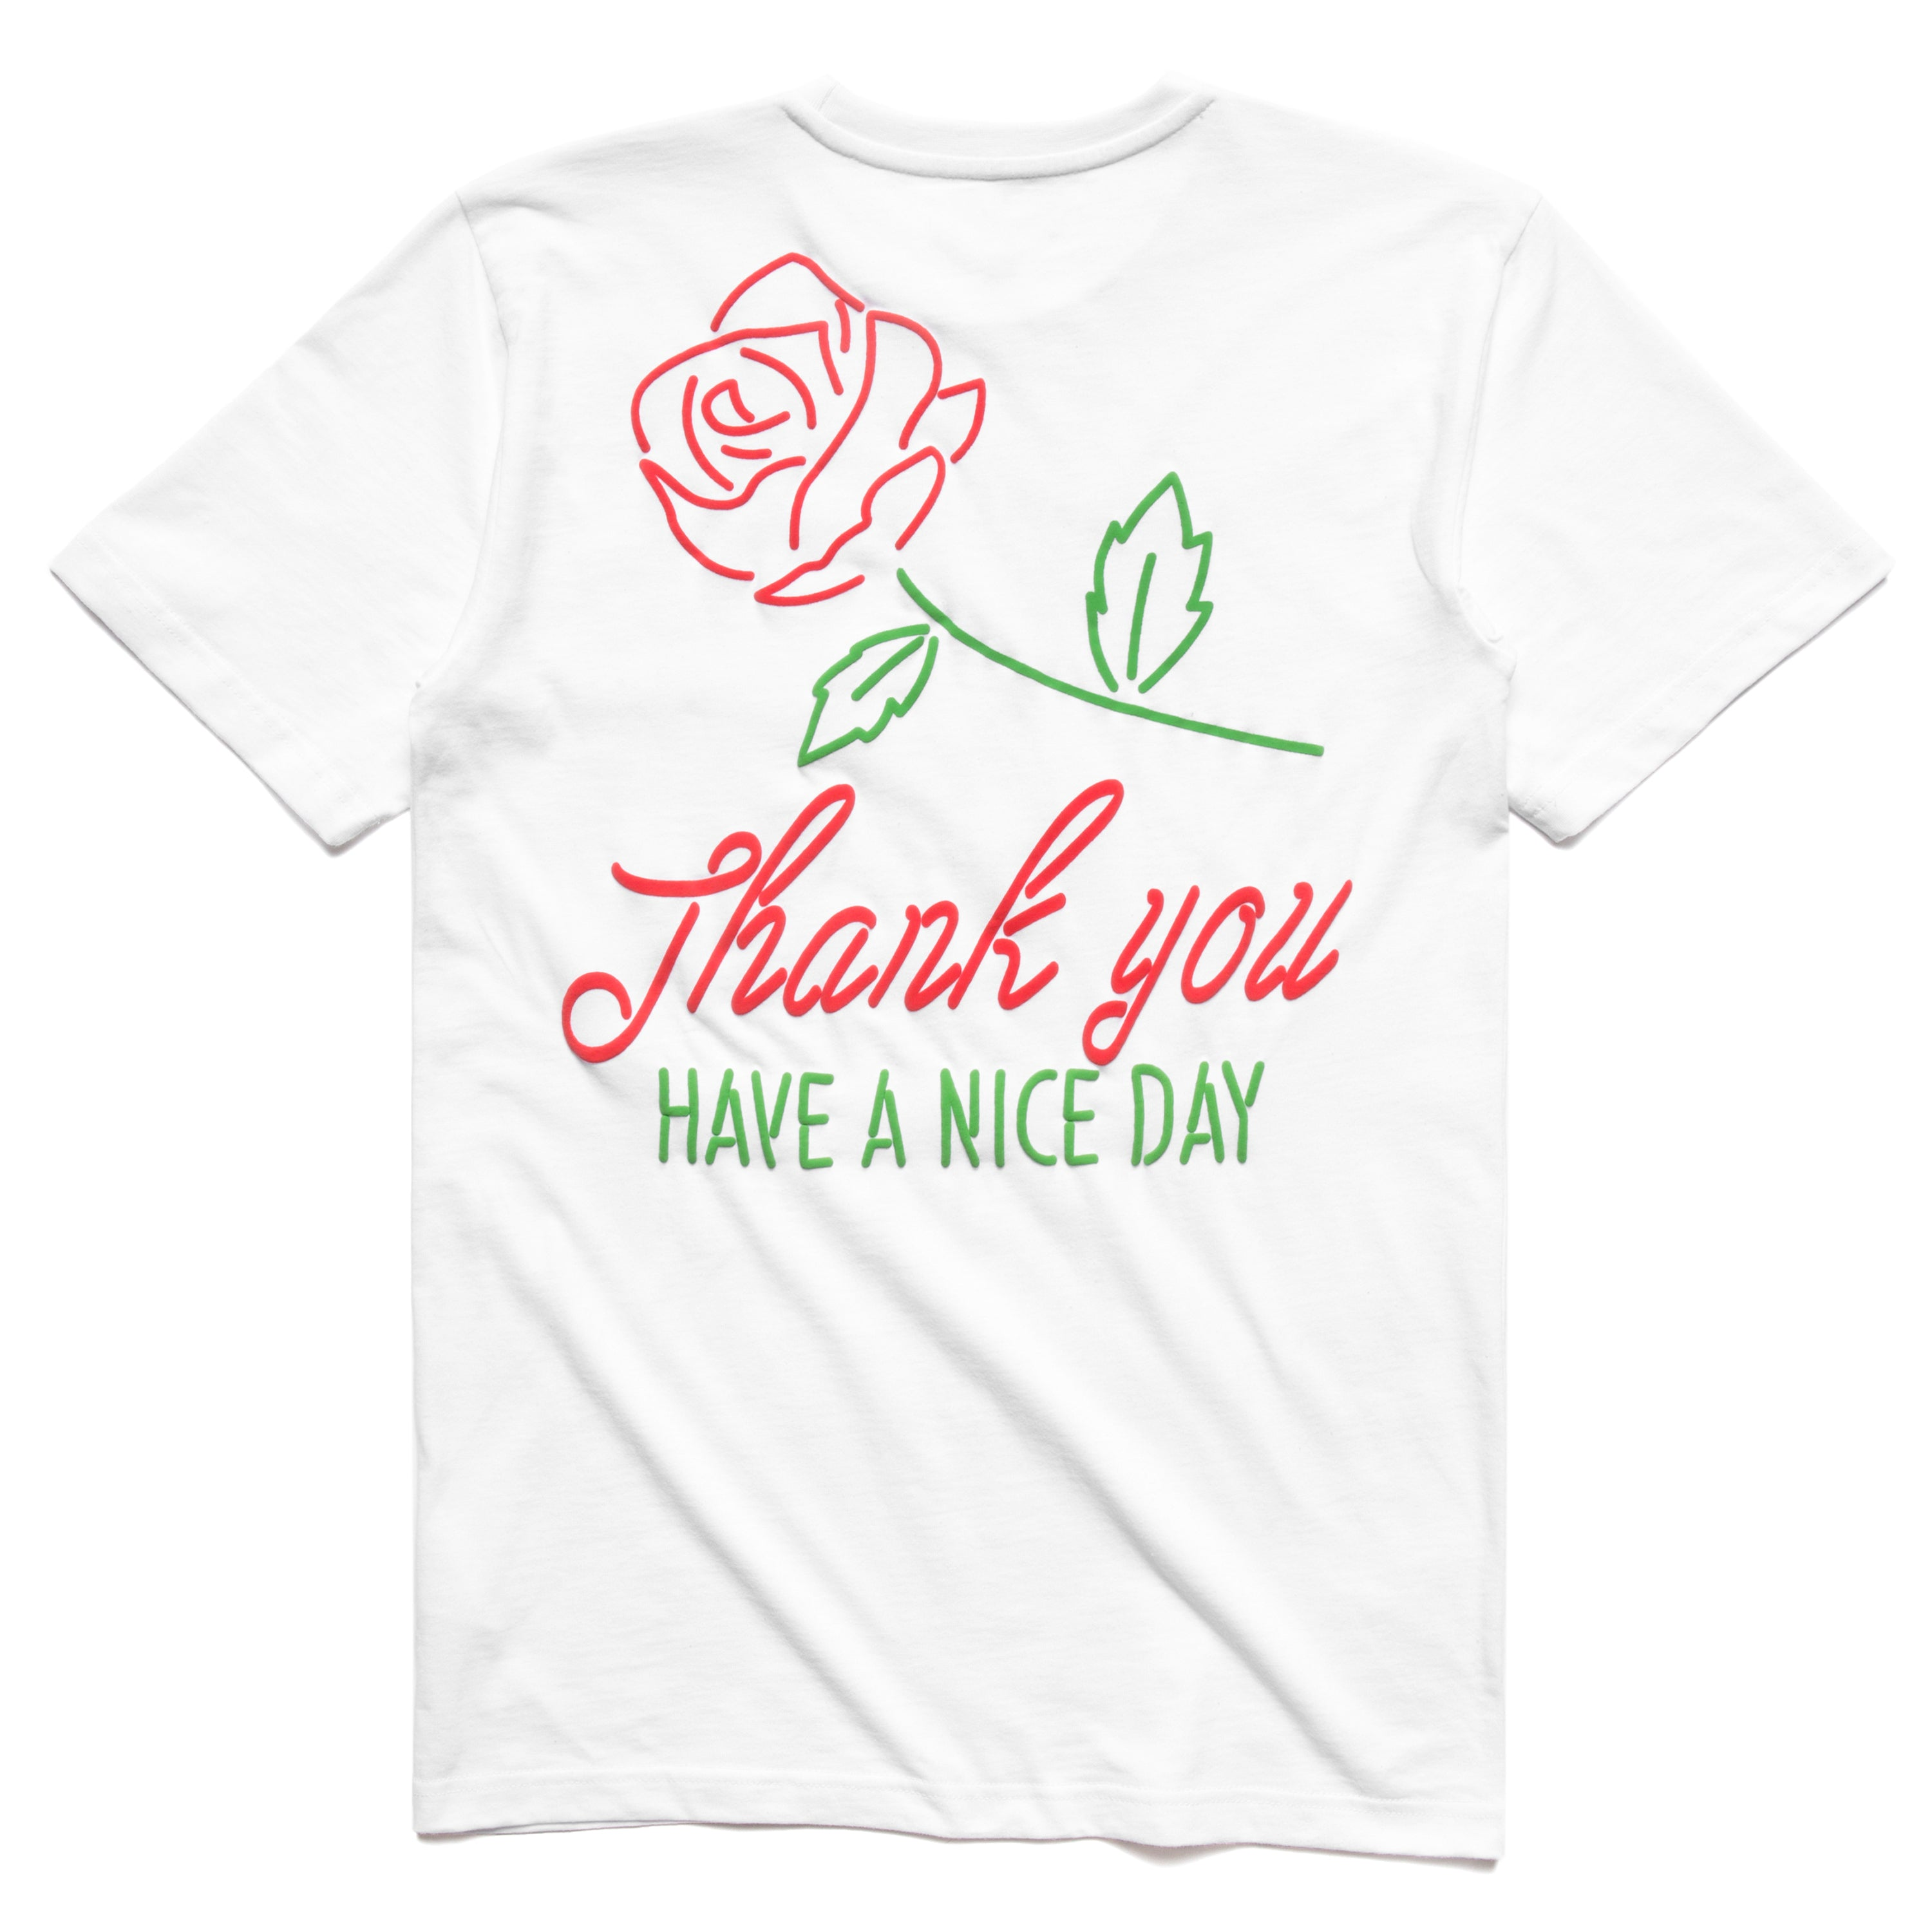 ROSE T-SHIRT (WHITE)